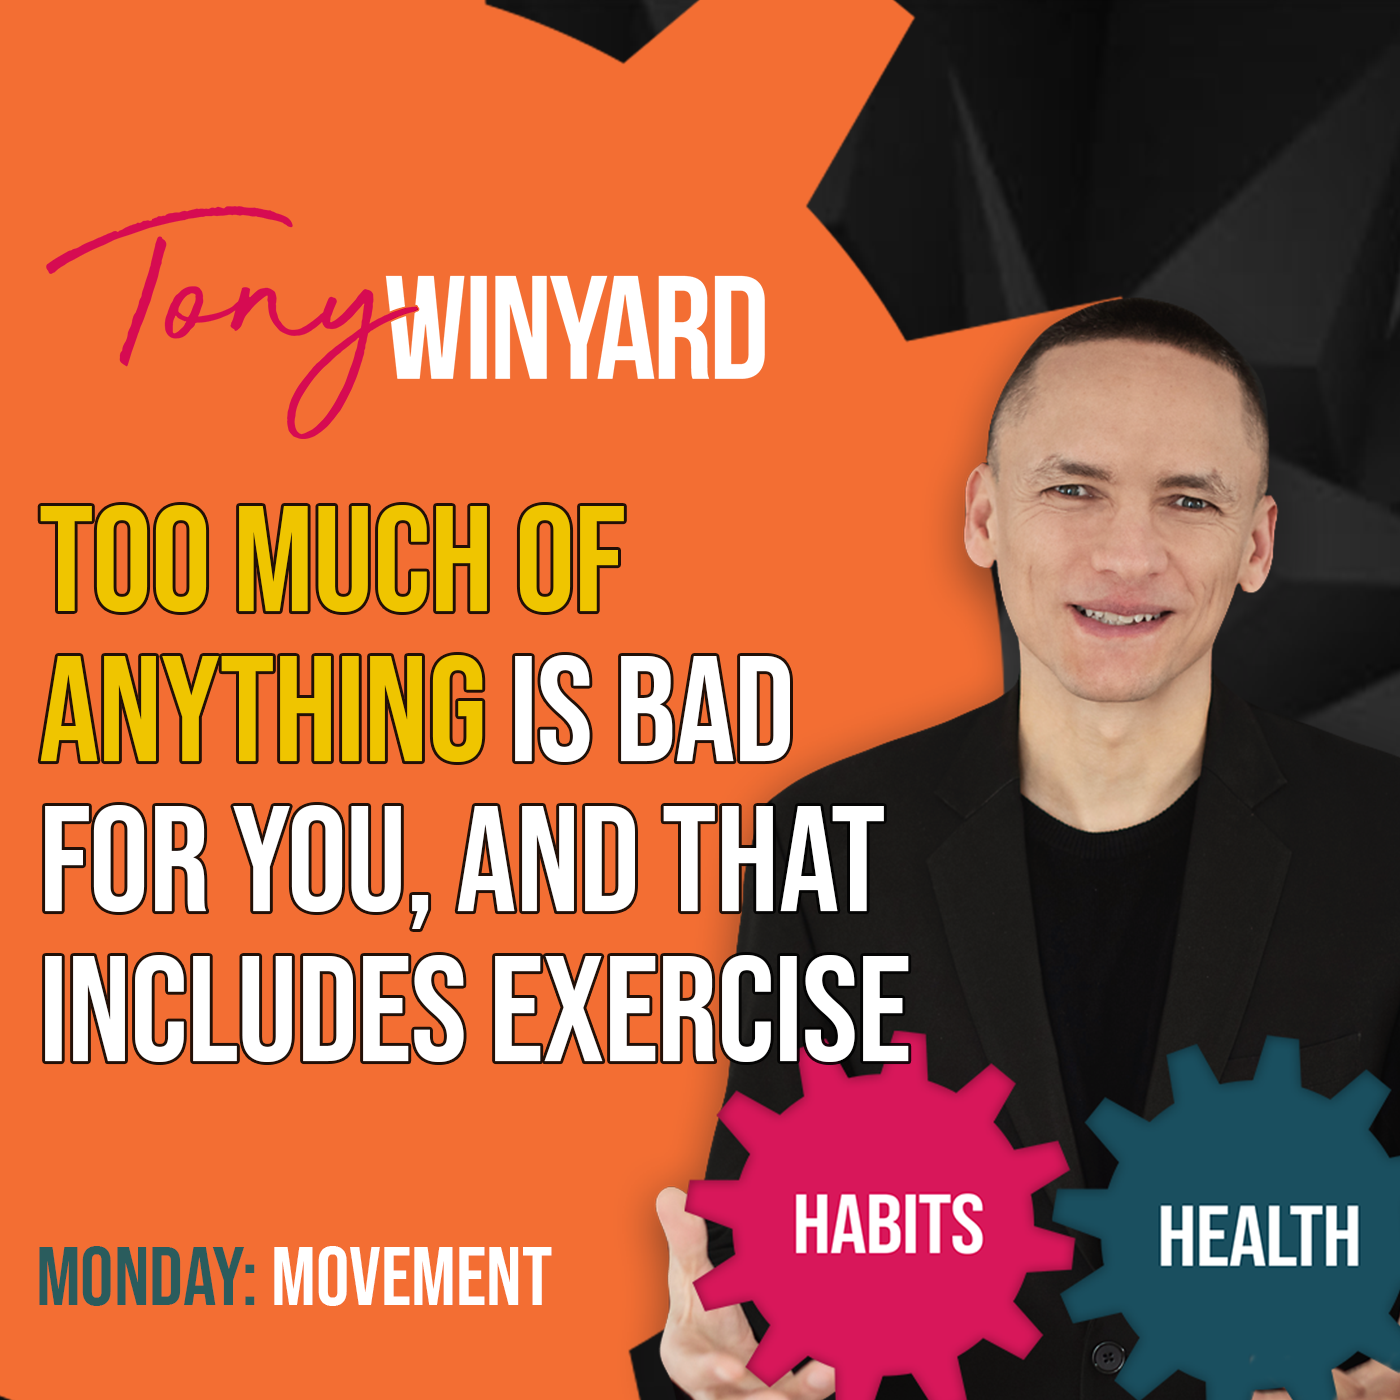 Too much of anything is bad for you, and that includes exercise